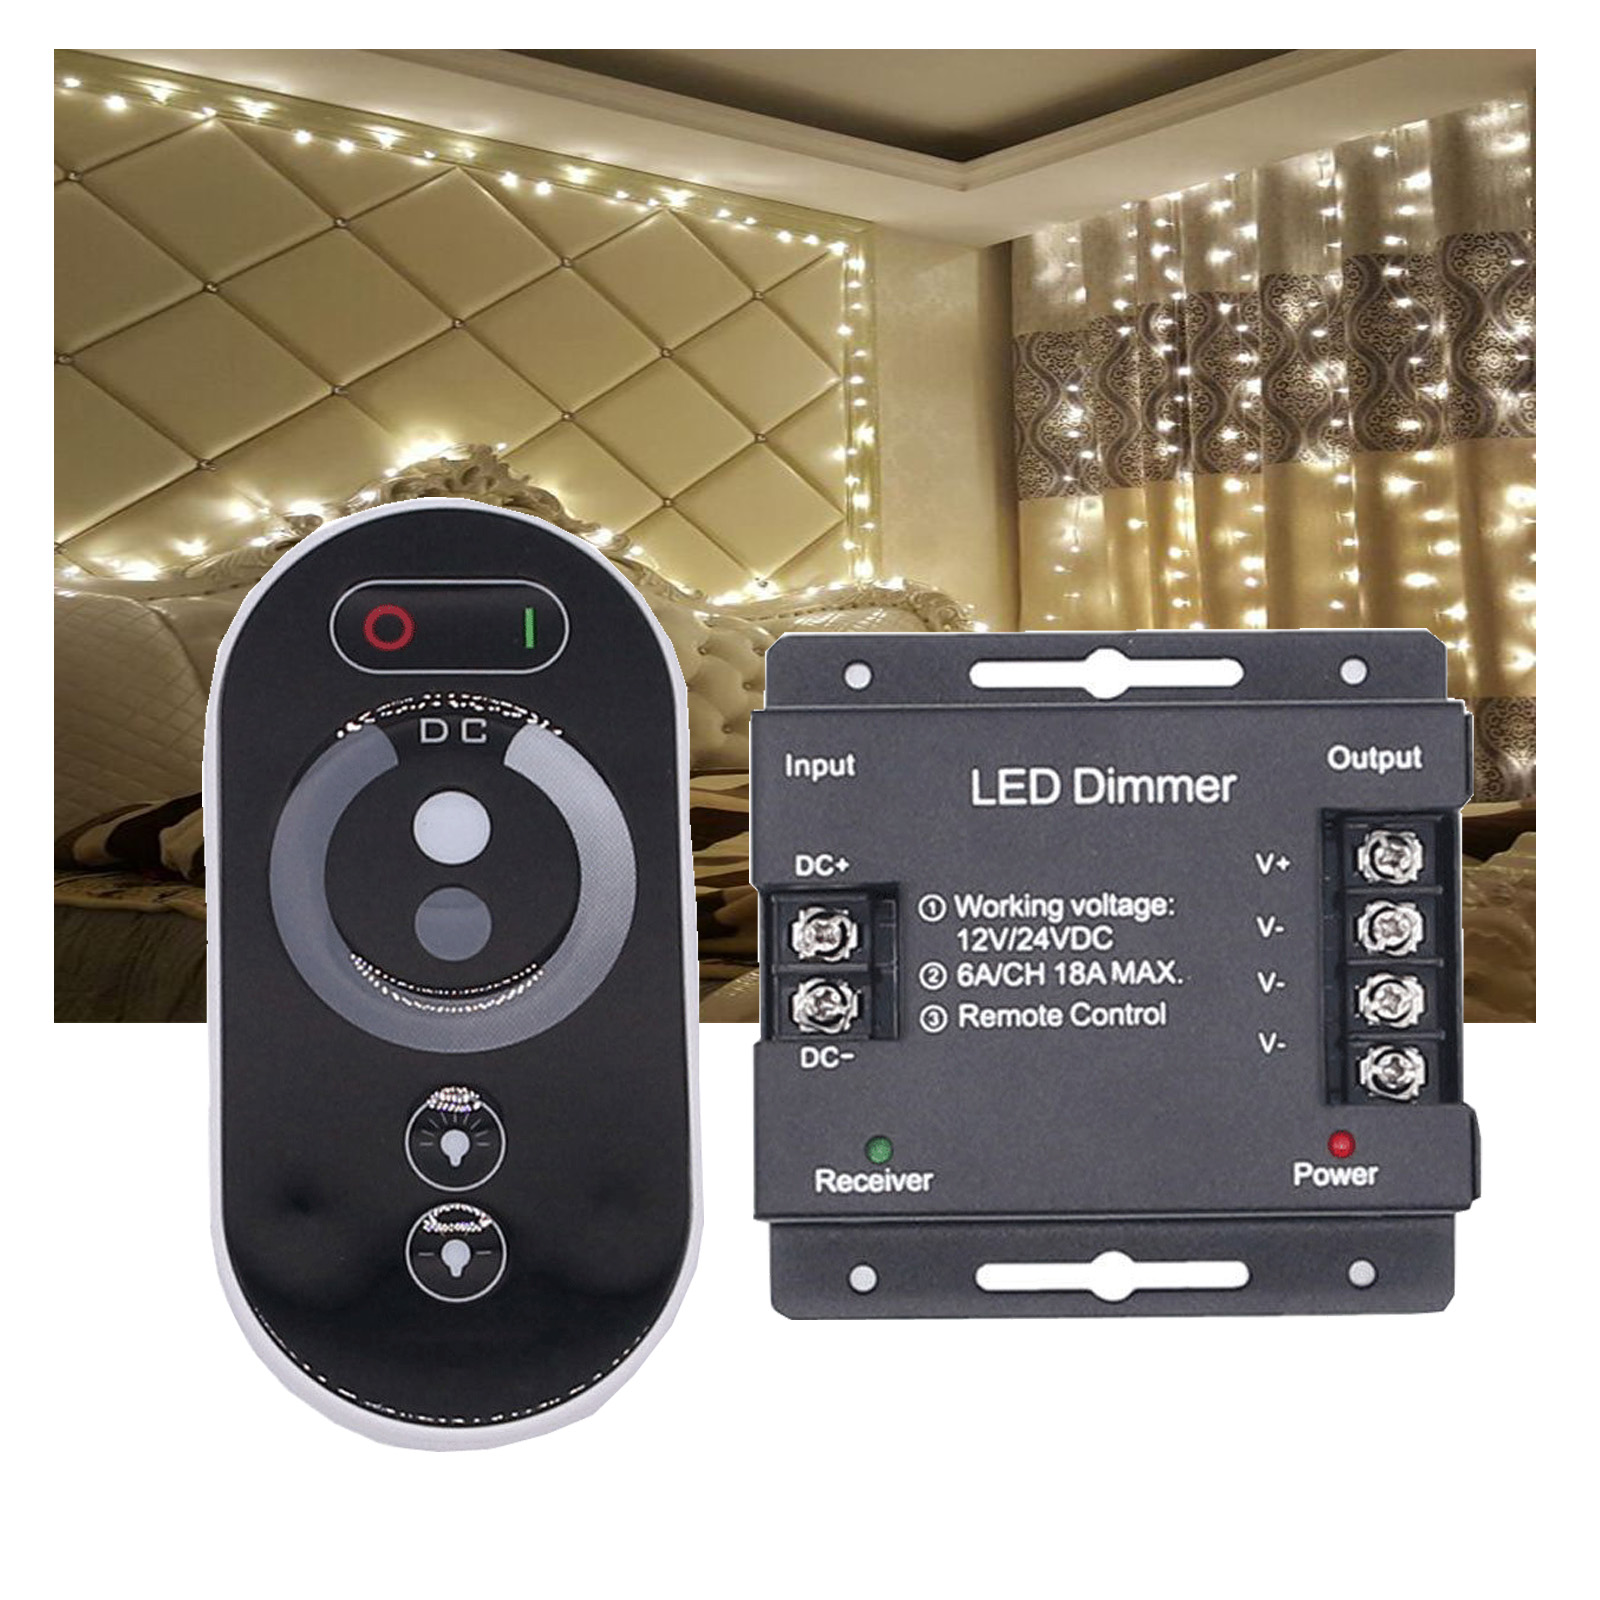 Details About Fr Touch Remote Controller Led Dimmer Single Color Steel Shell Dc12 24v 6a Rt696